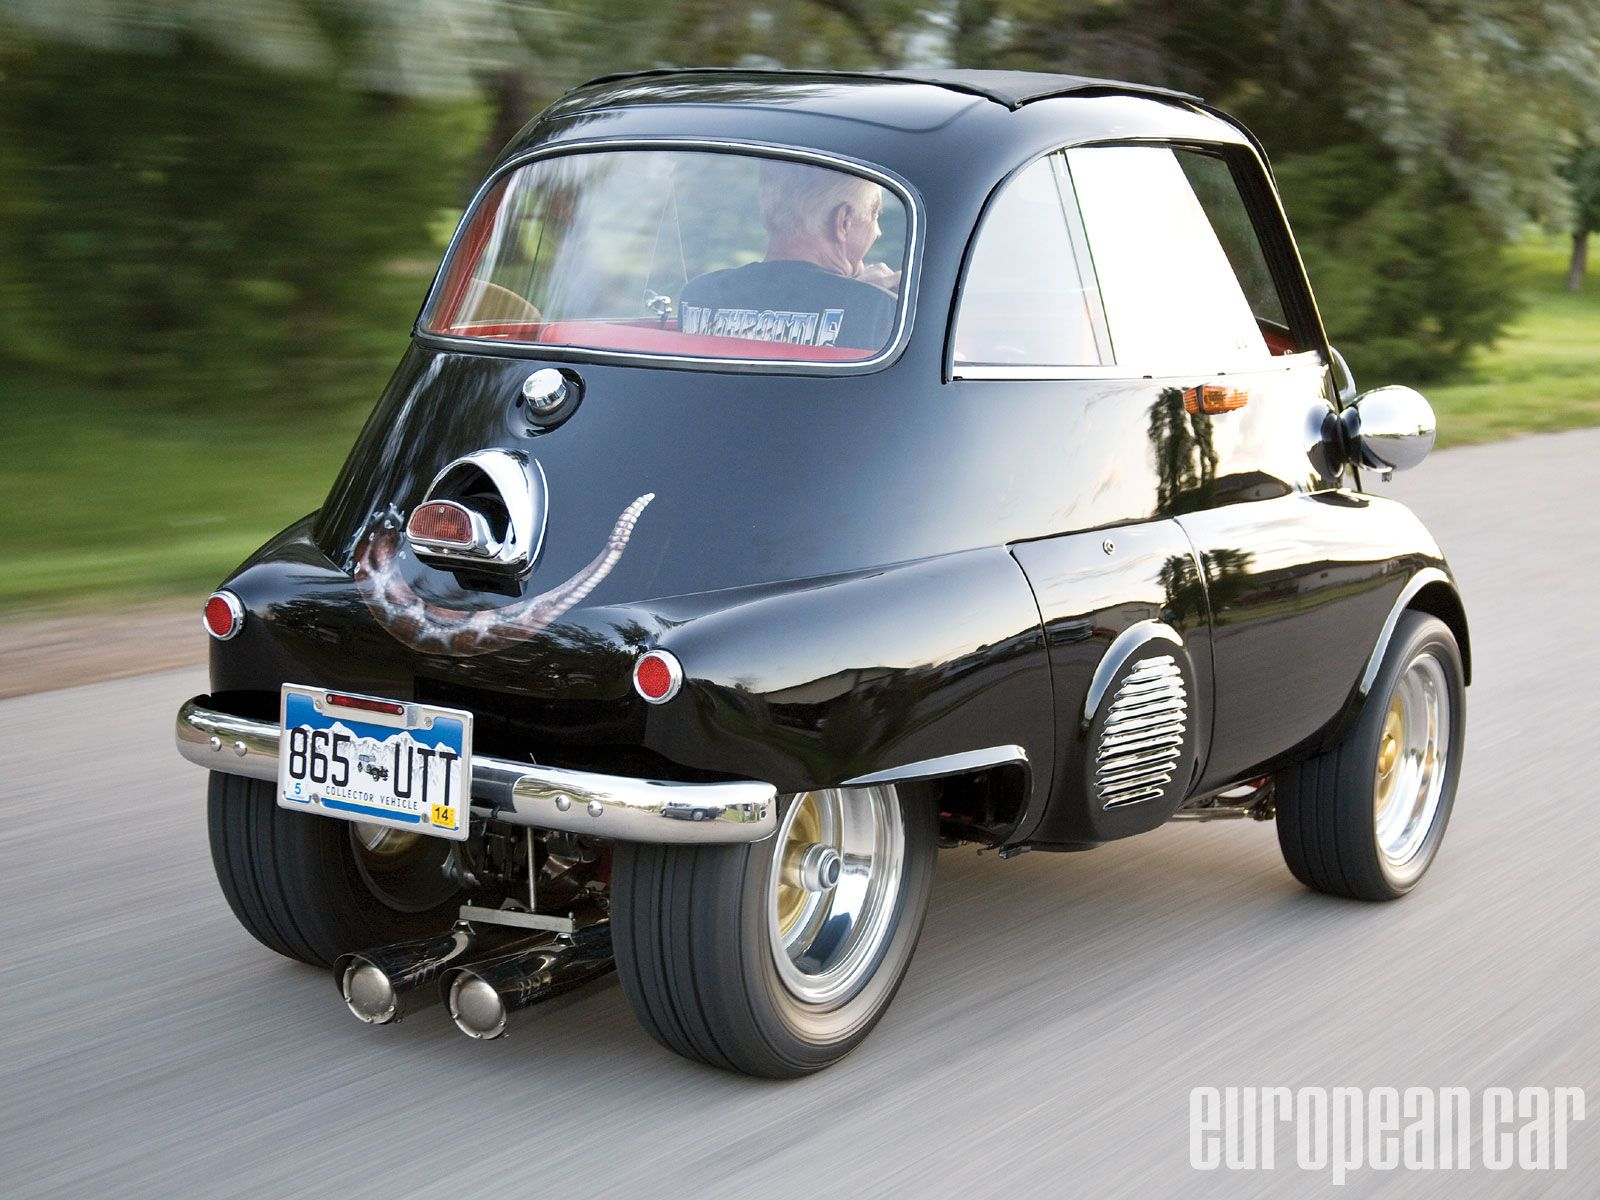 Check out this 1957 bmw isetta 300 that features a 1989 yamaha motorcycle motor and a top speed of 150 mph